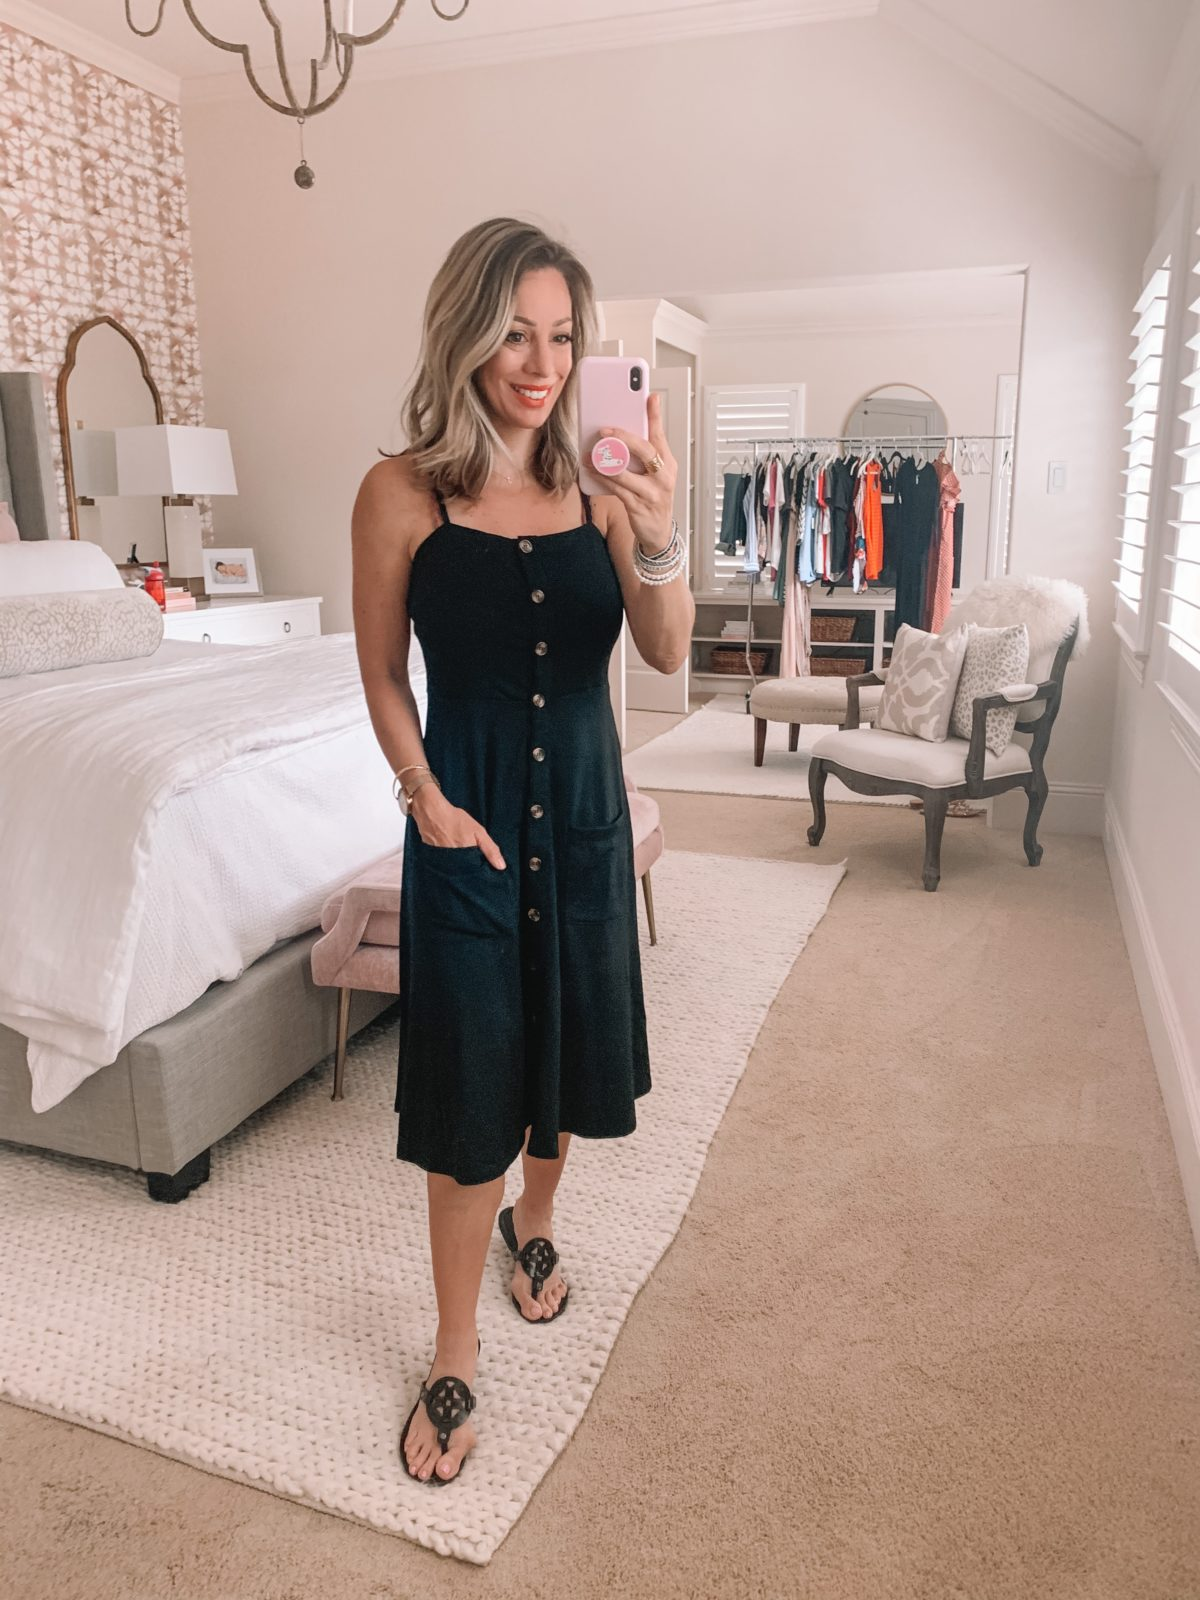 Amazon Fashion Finds, Black Button Down Dress, Miller Dupe Sandals